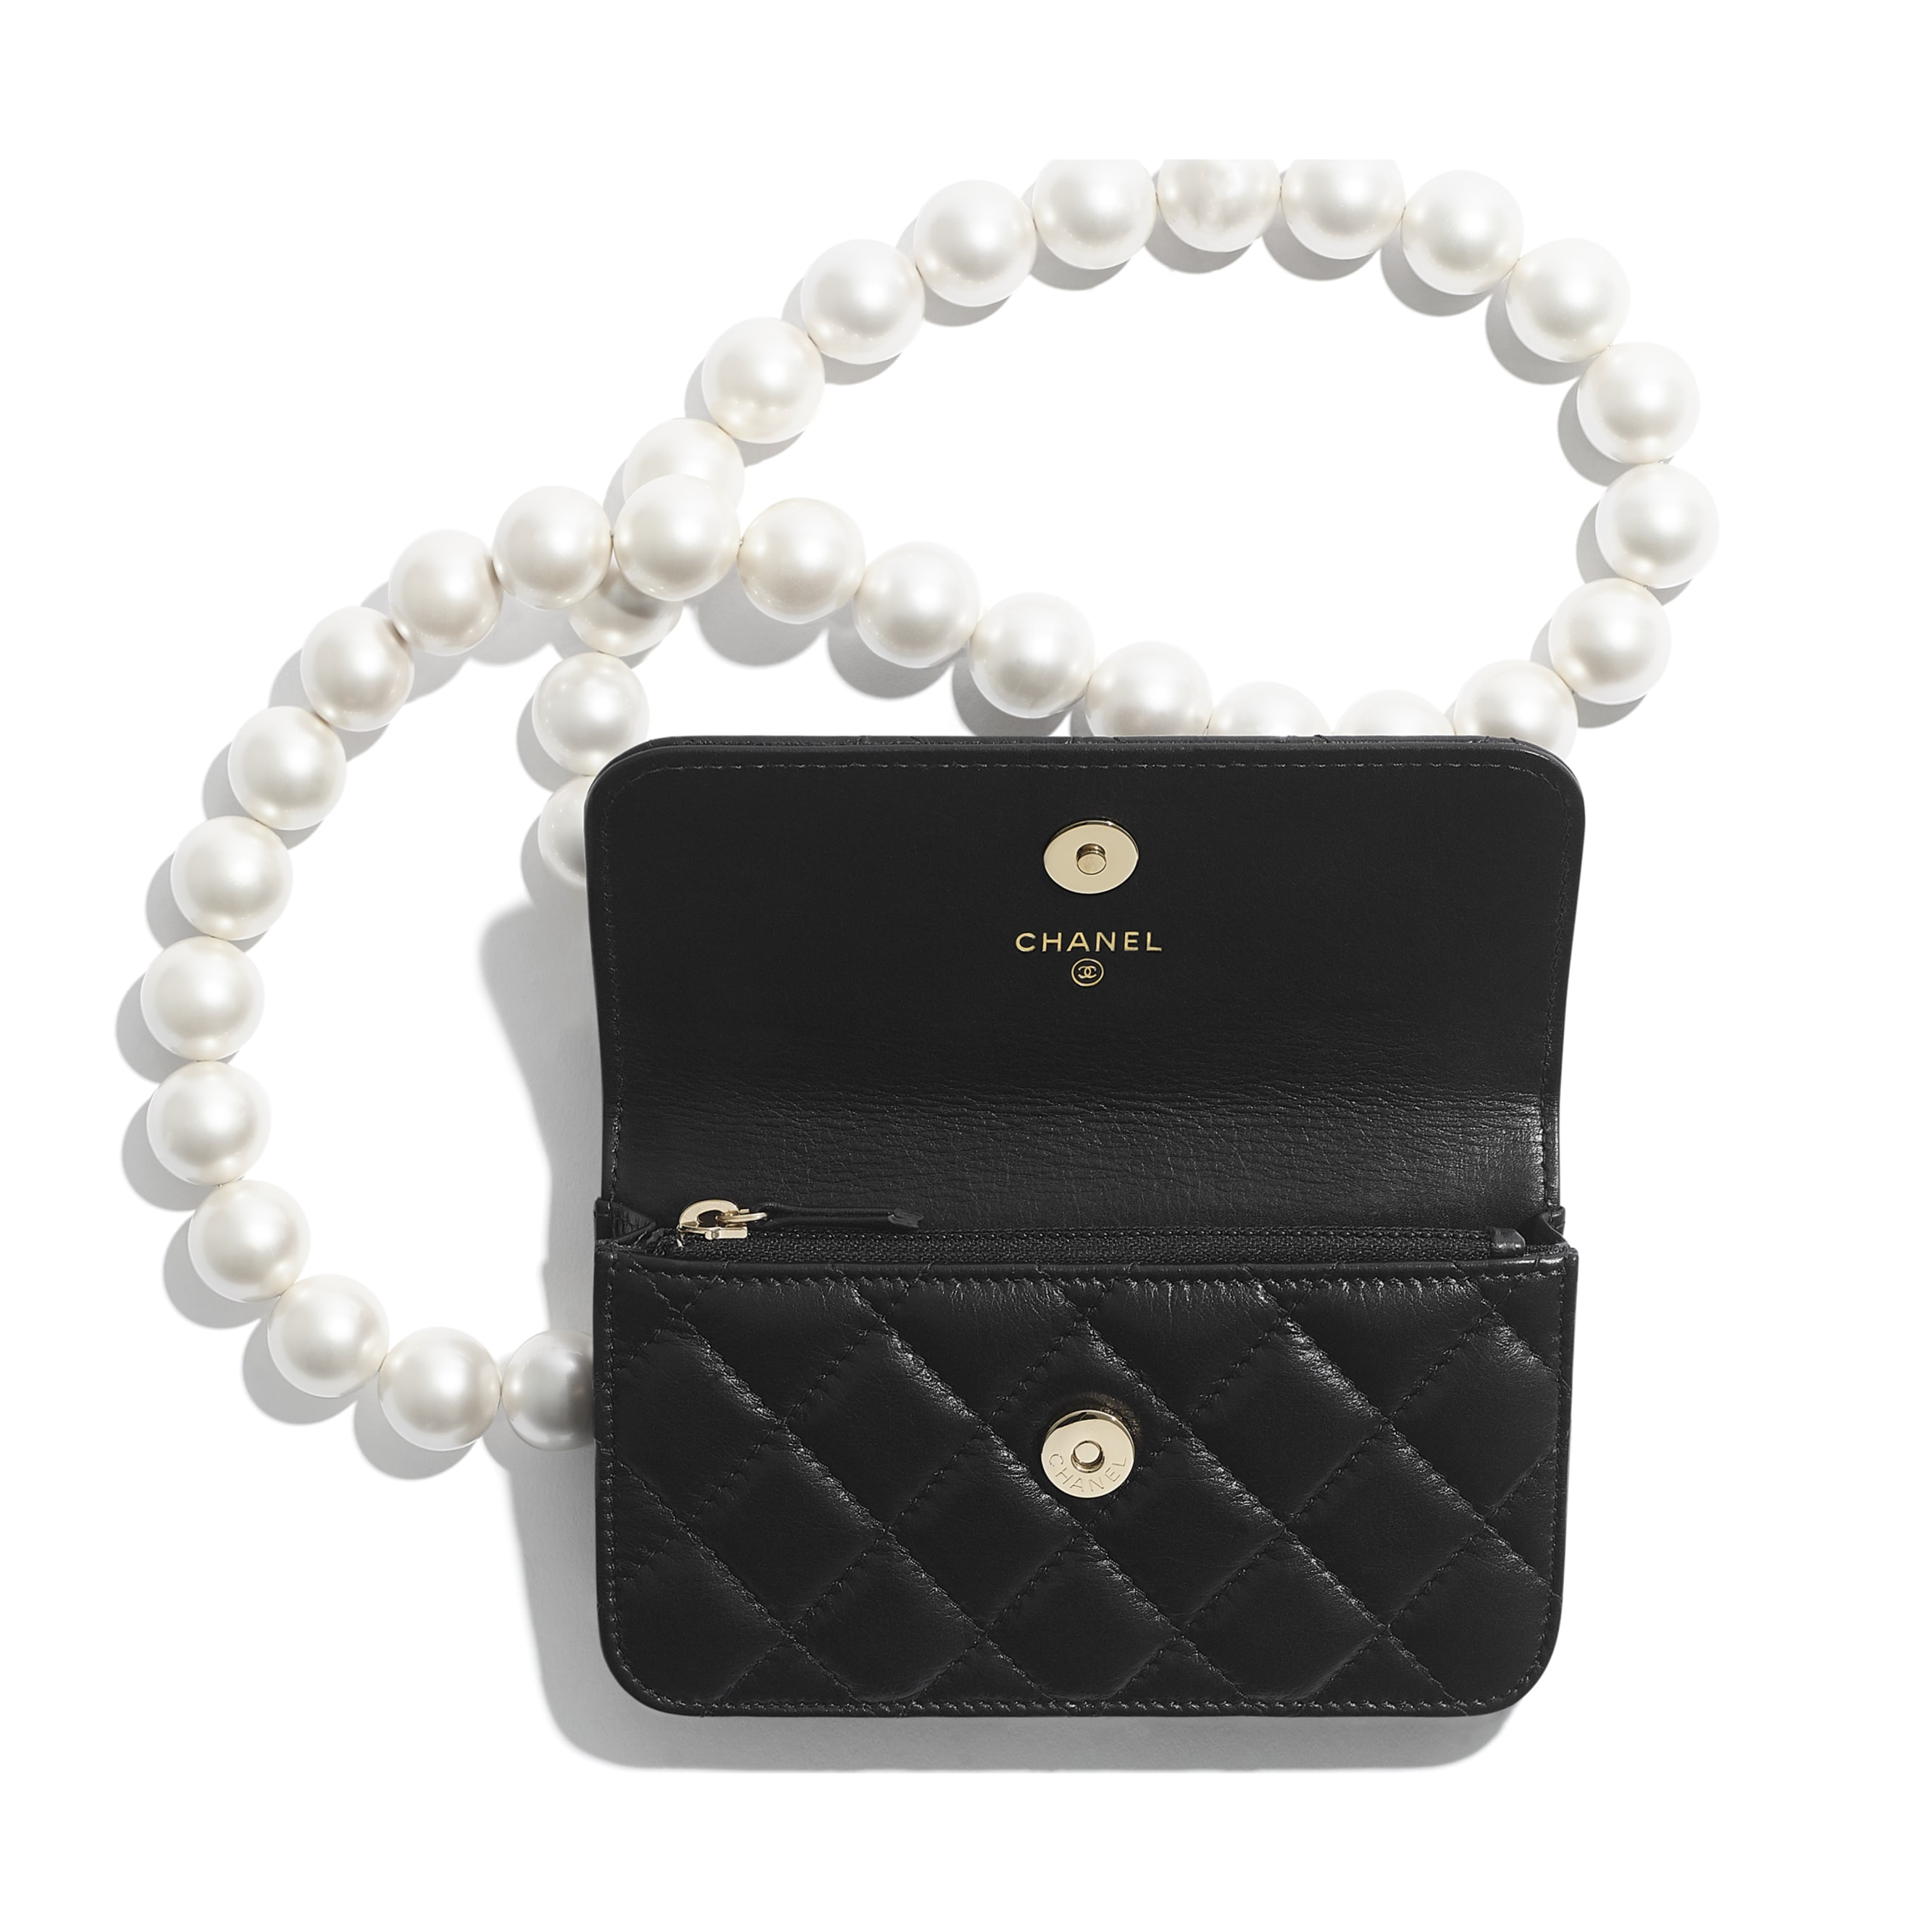 Clutch With Chain - Black - Calfskin, Imitation Pearls & Gold-Tone Metal - CHANEL - Alternative view - see standard sized version